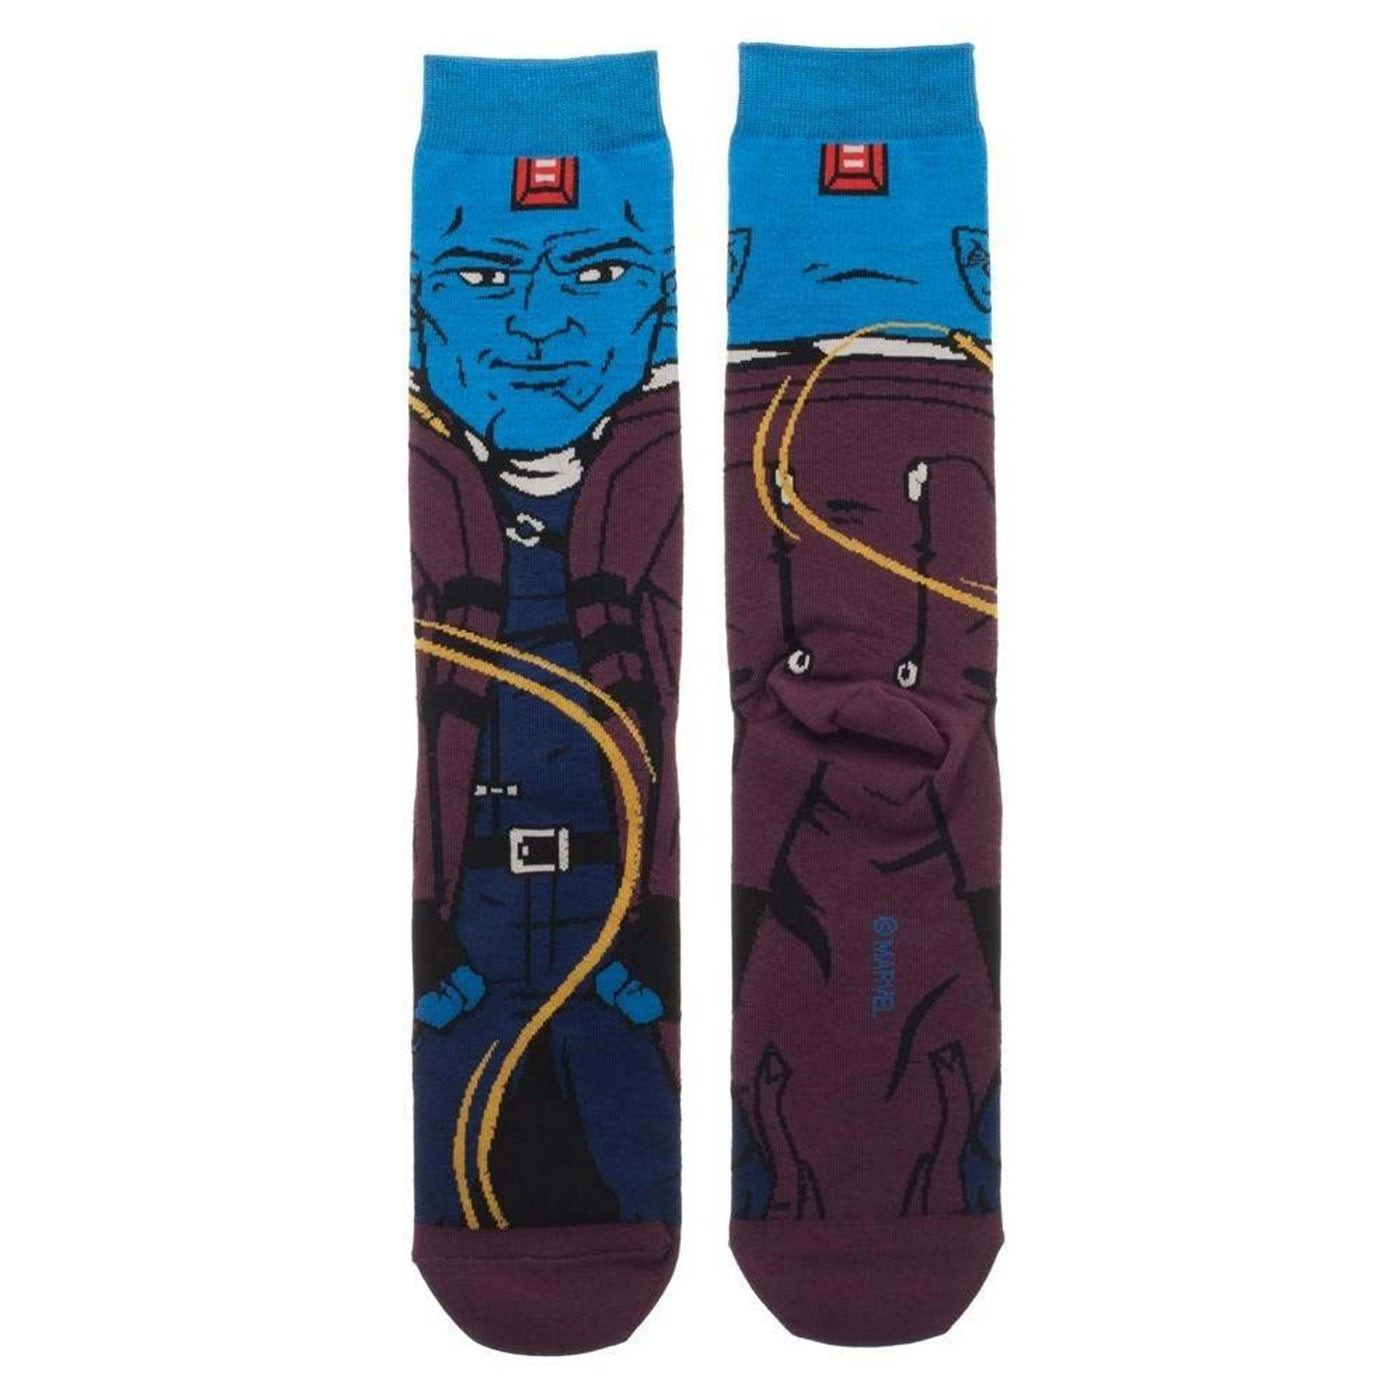 Guardians of the Galaxy Yondu Character Crew Sock